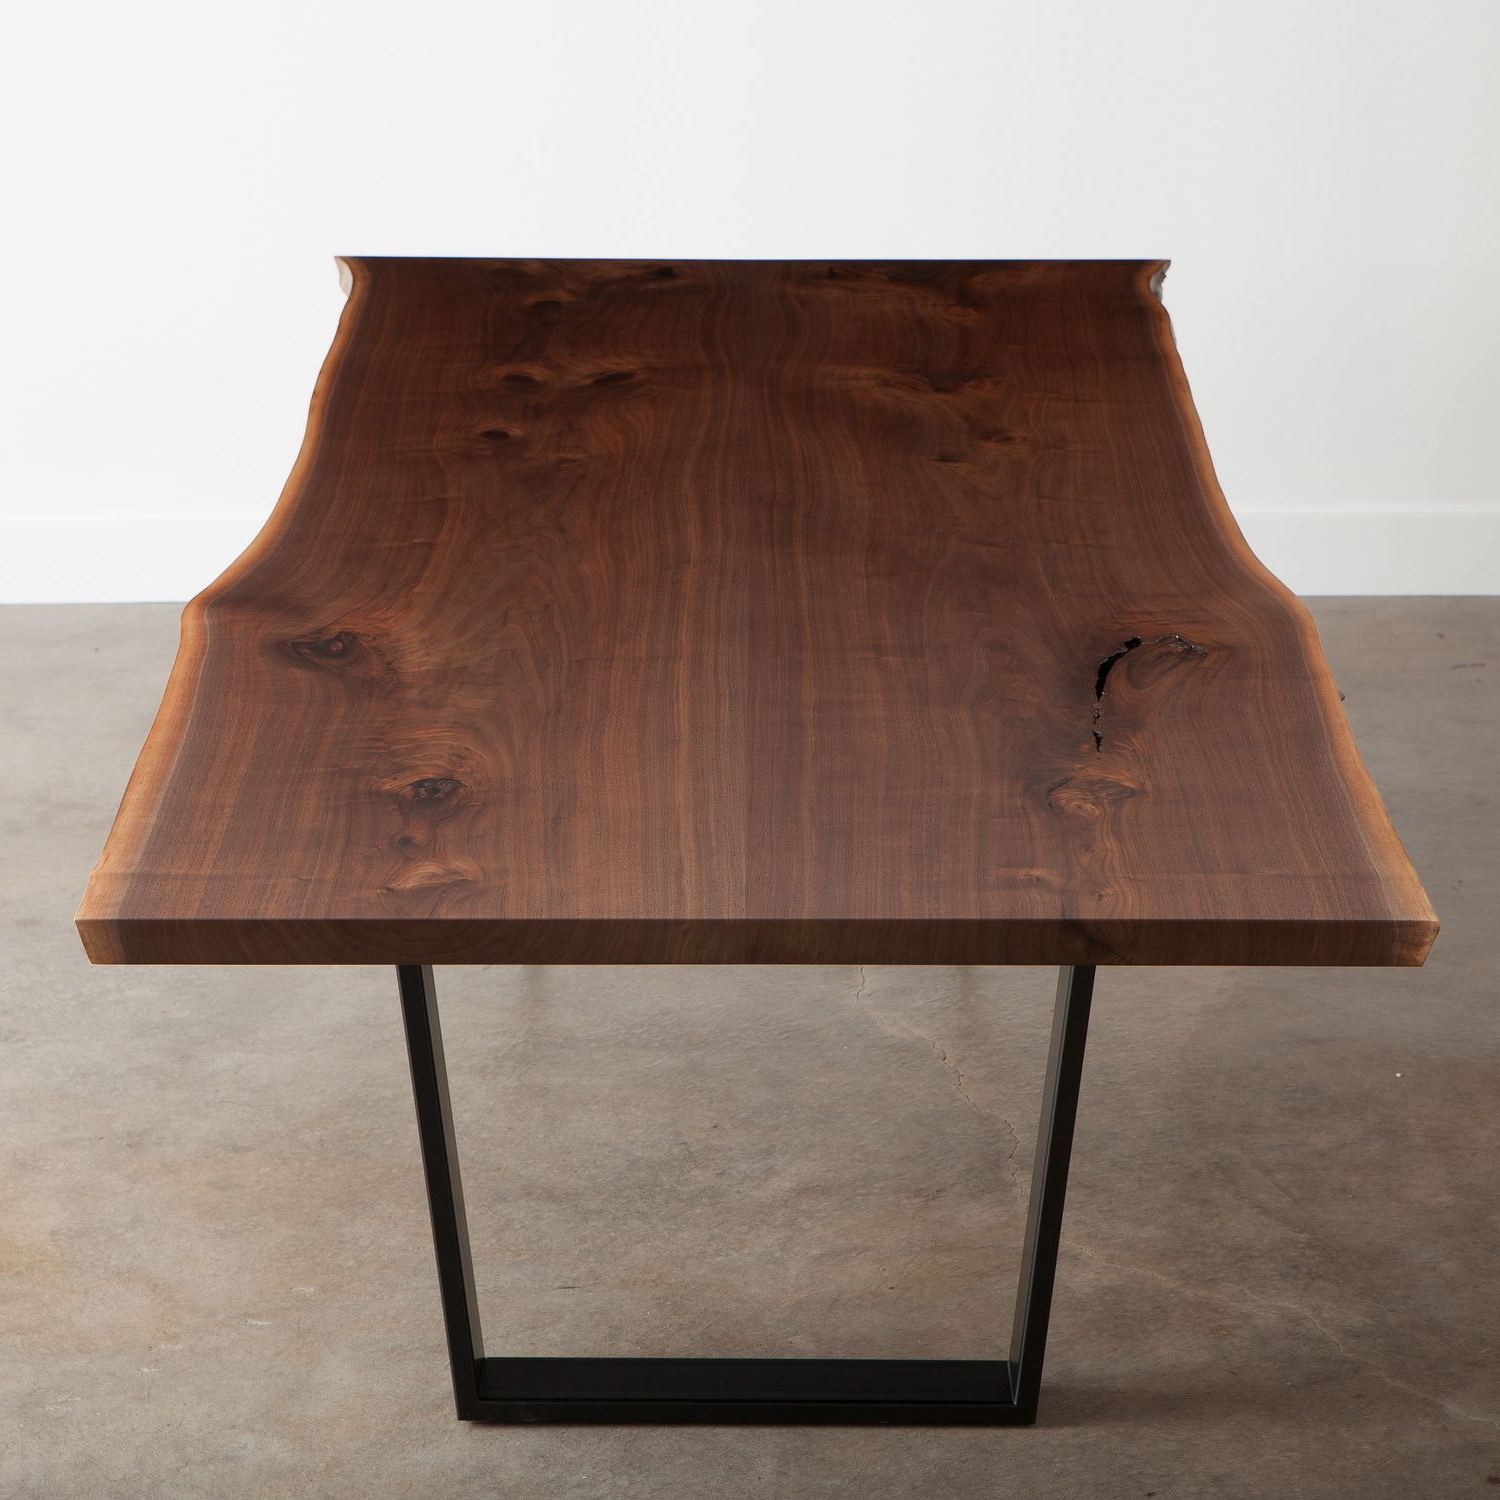 Walnut Finish Live Edge Wood Contemporary Dining Tables With Regard To Well Liked Walnut Dining Table (View 16 of 25)